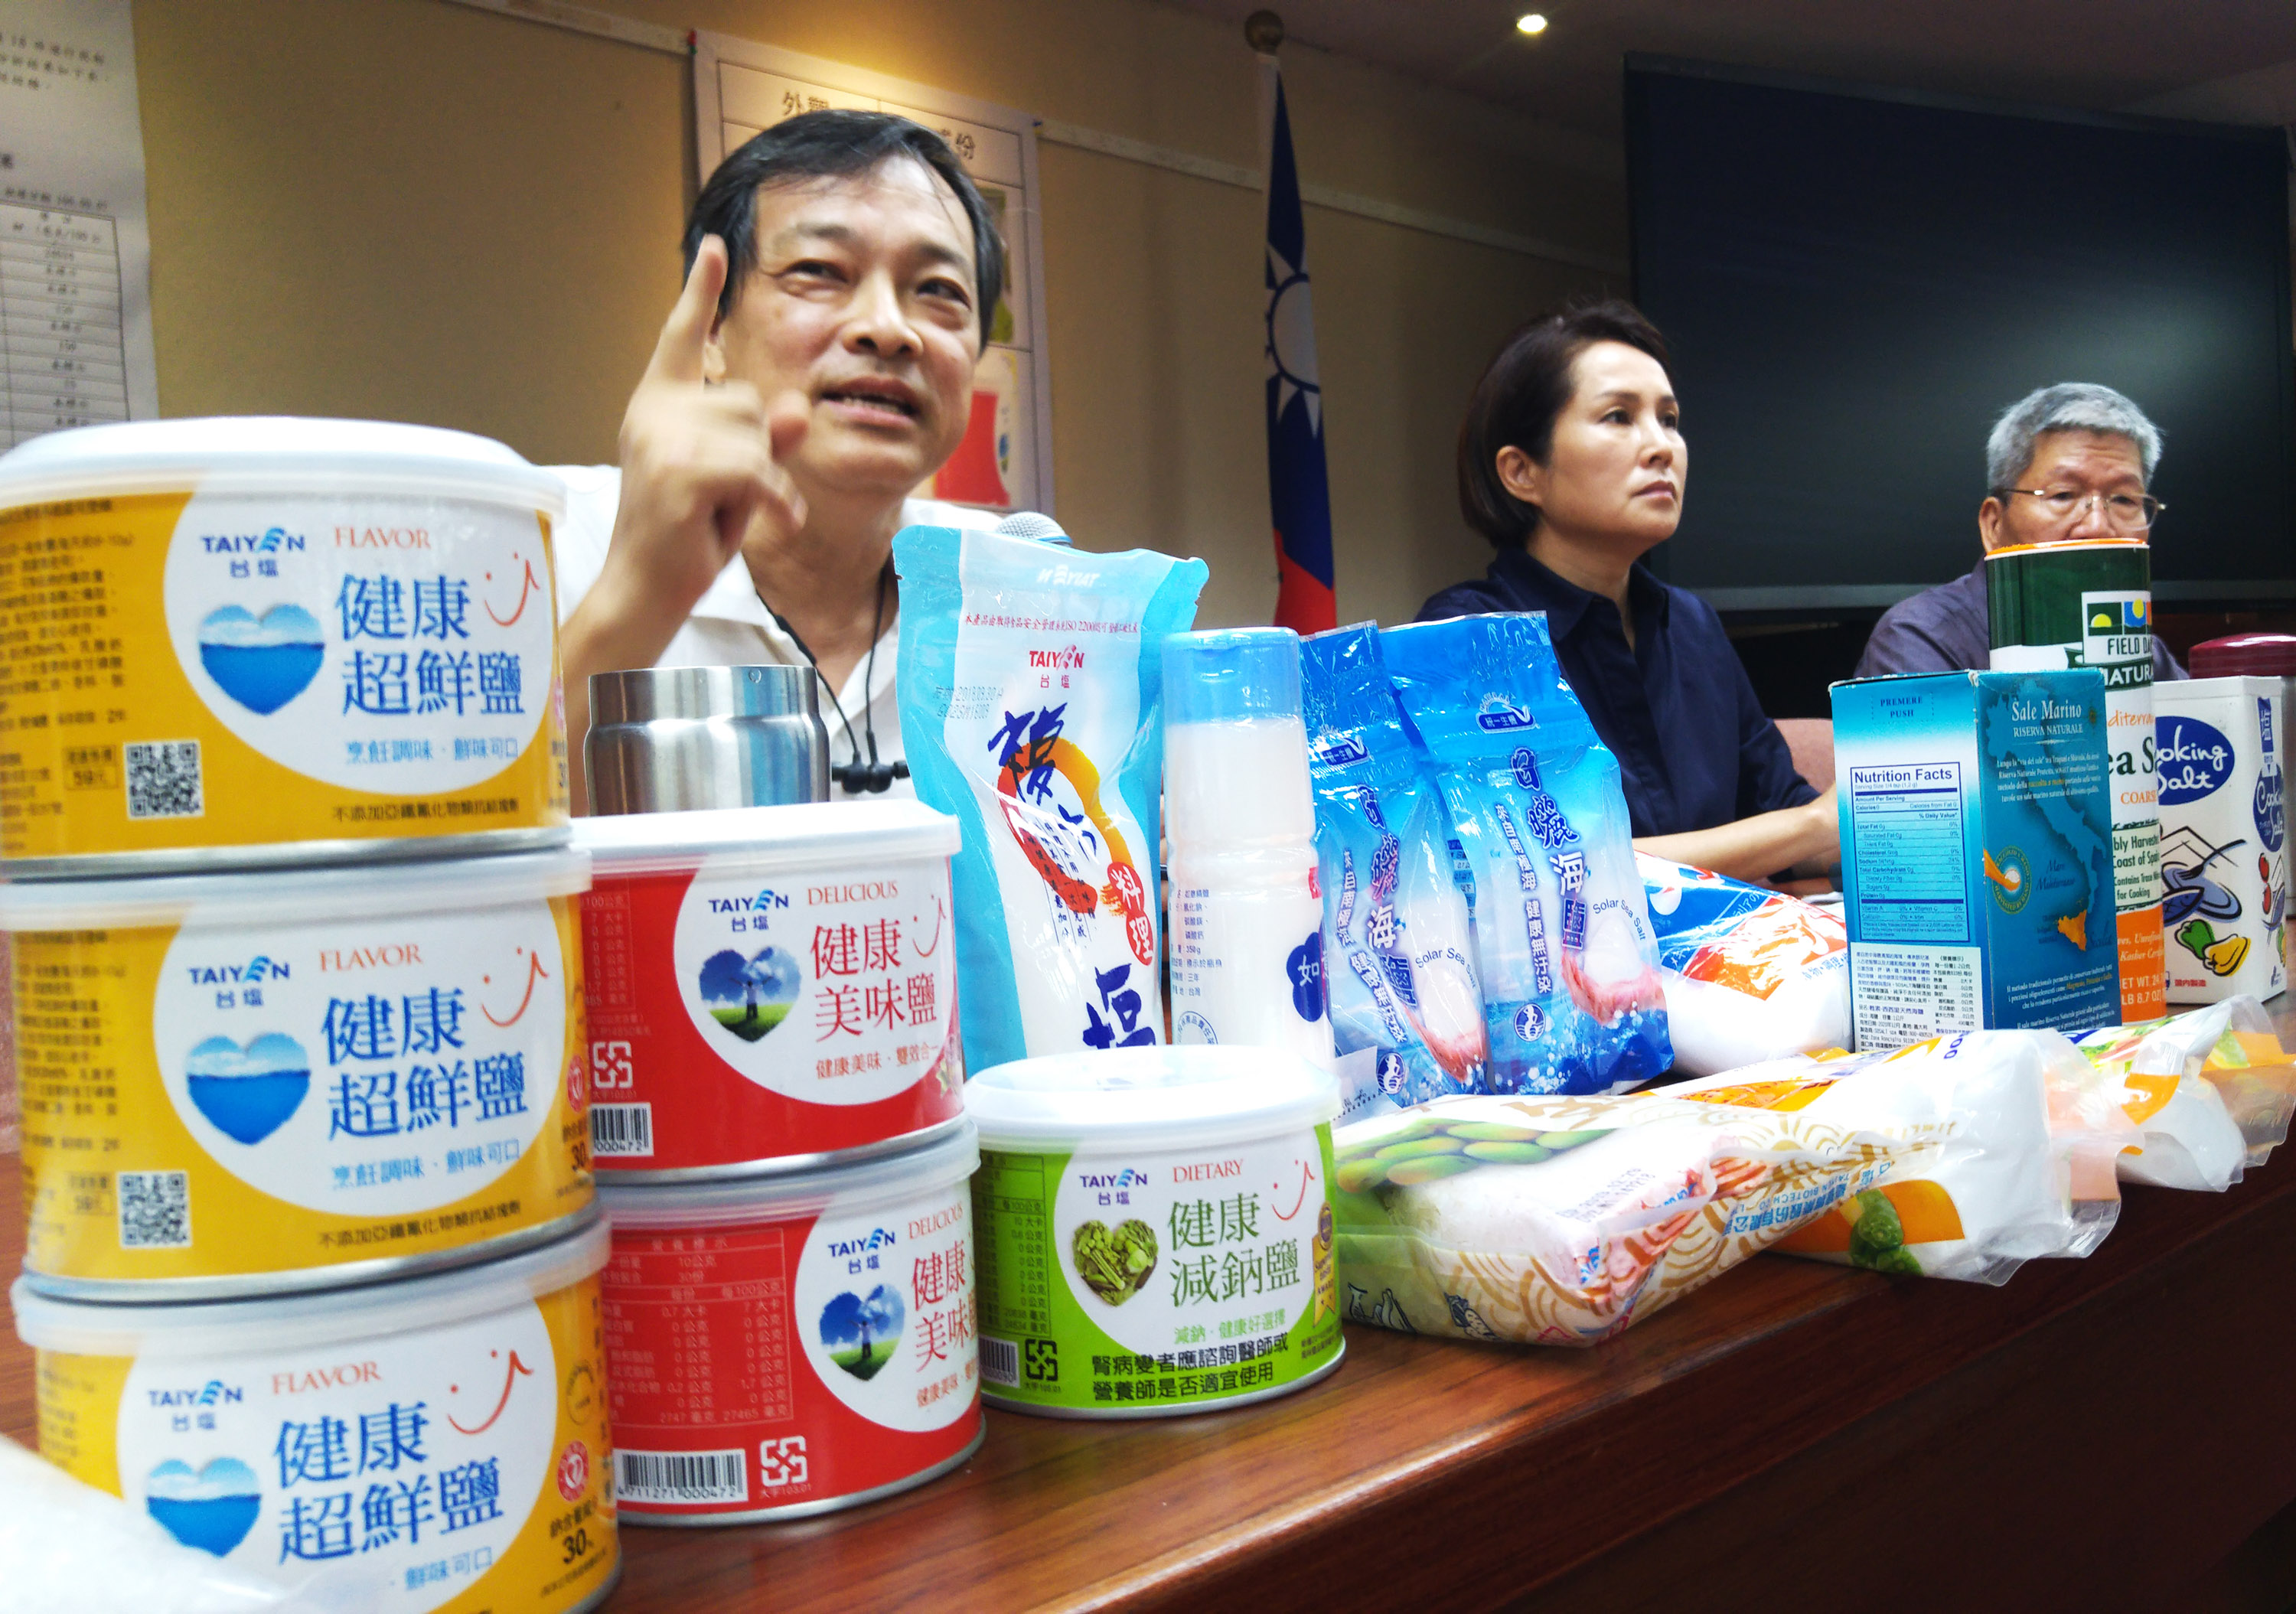 Taiwan's legislator said Taiyen's salt substitutes contain high levels of radiation. (Source: CNA)